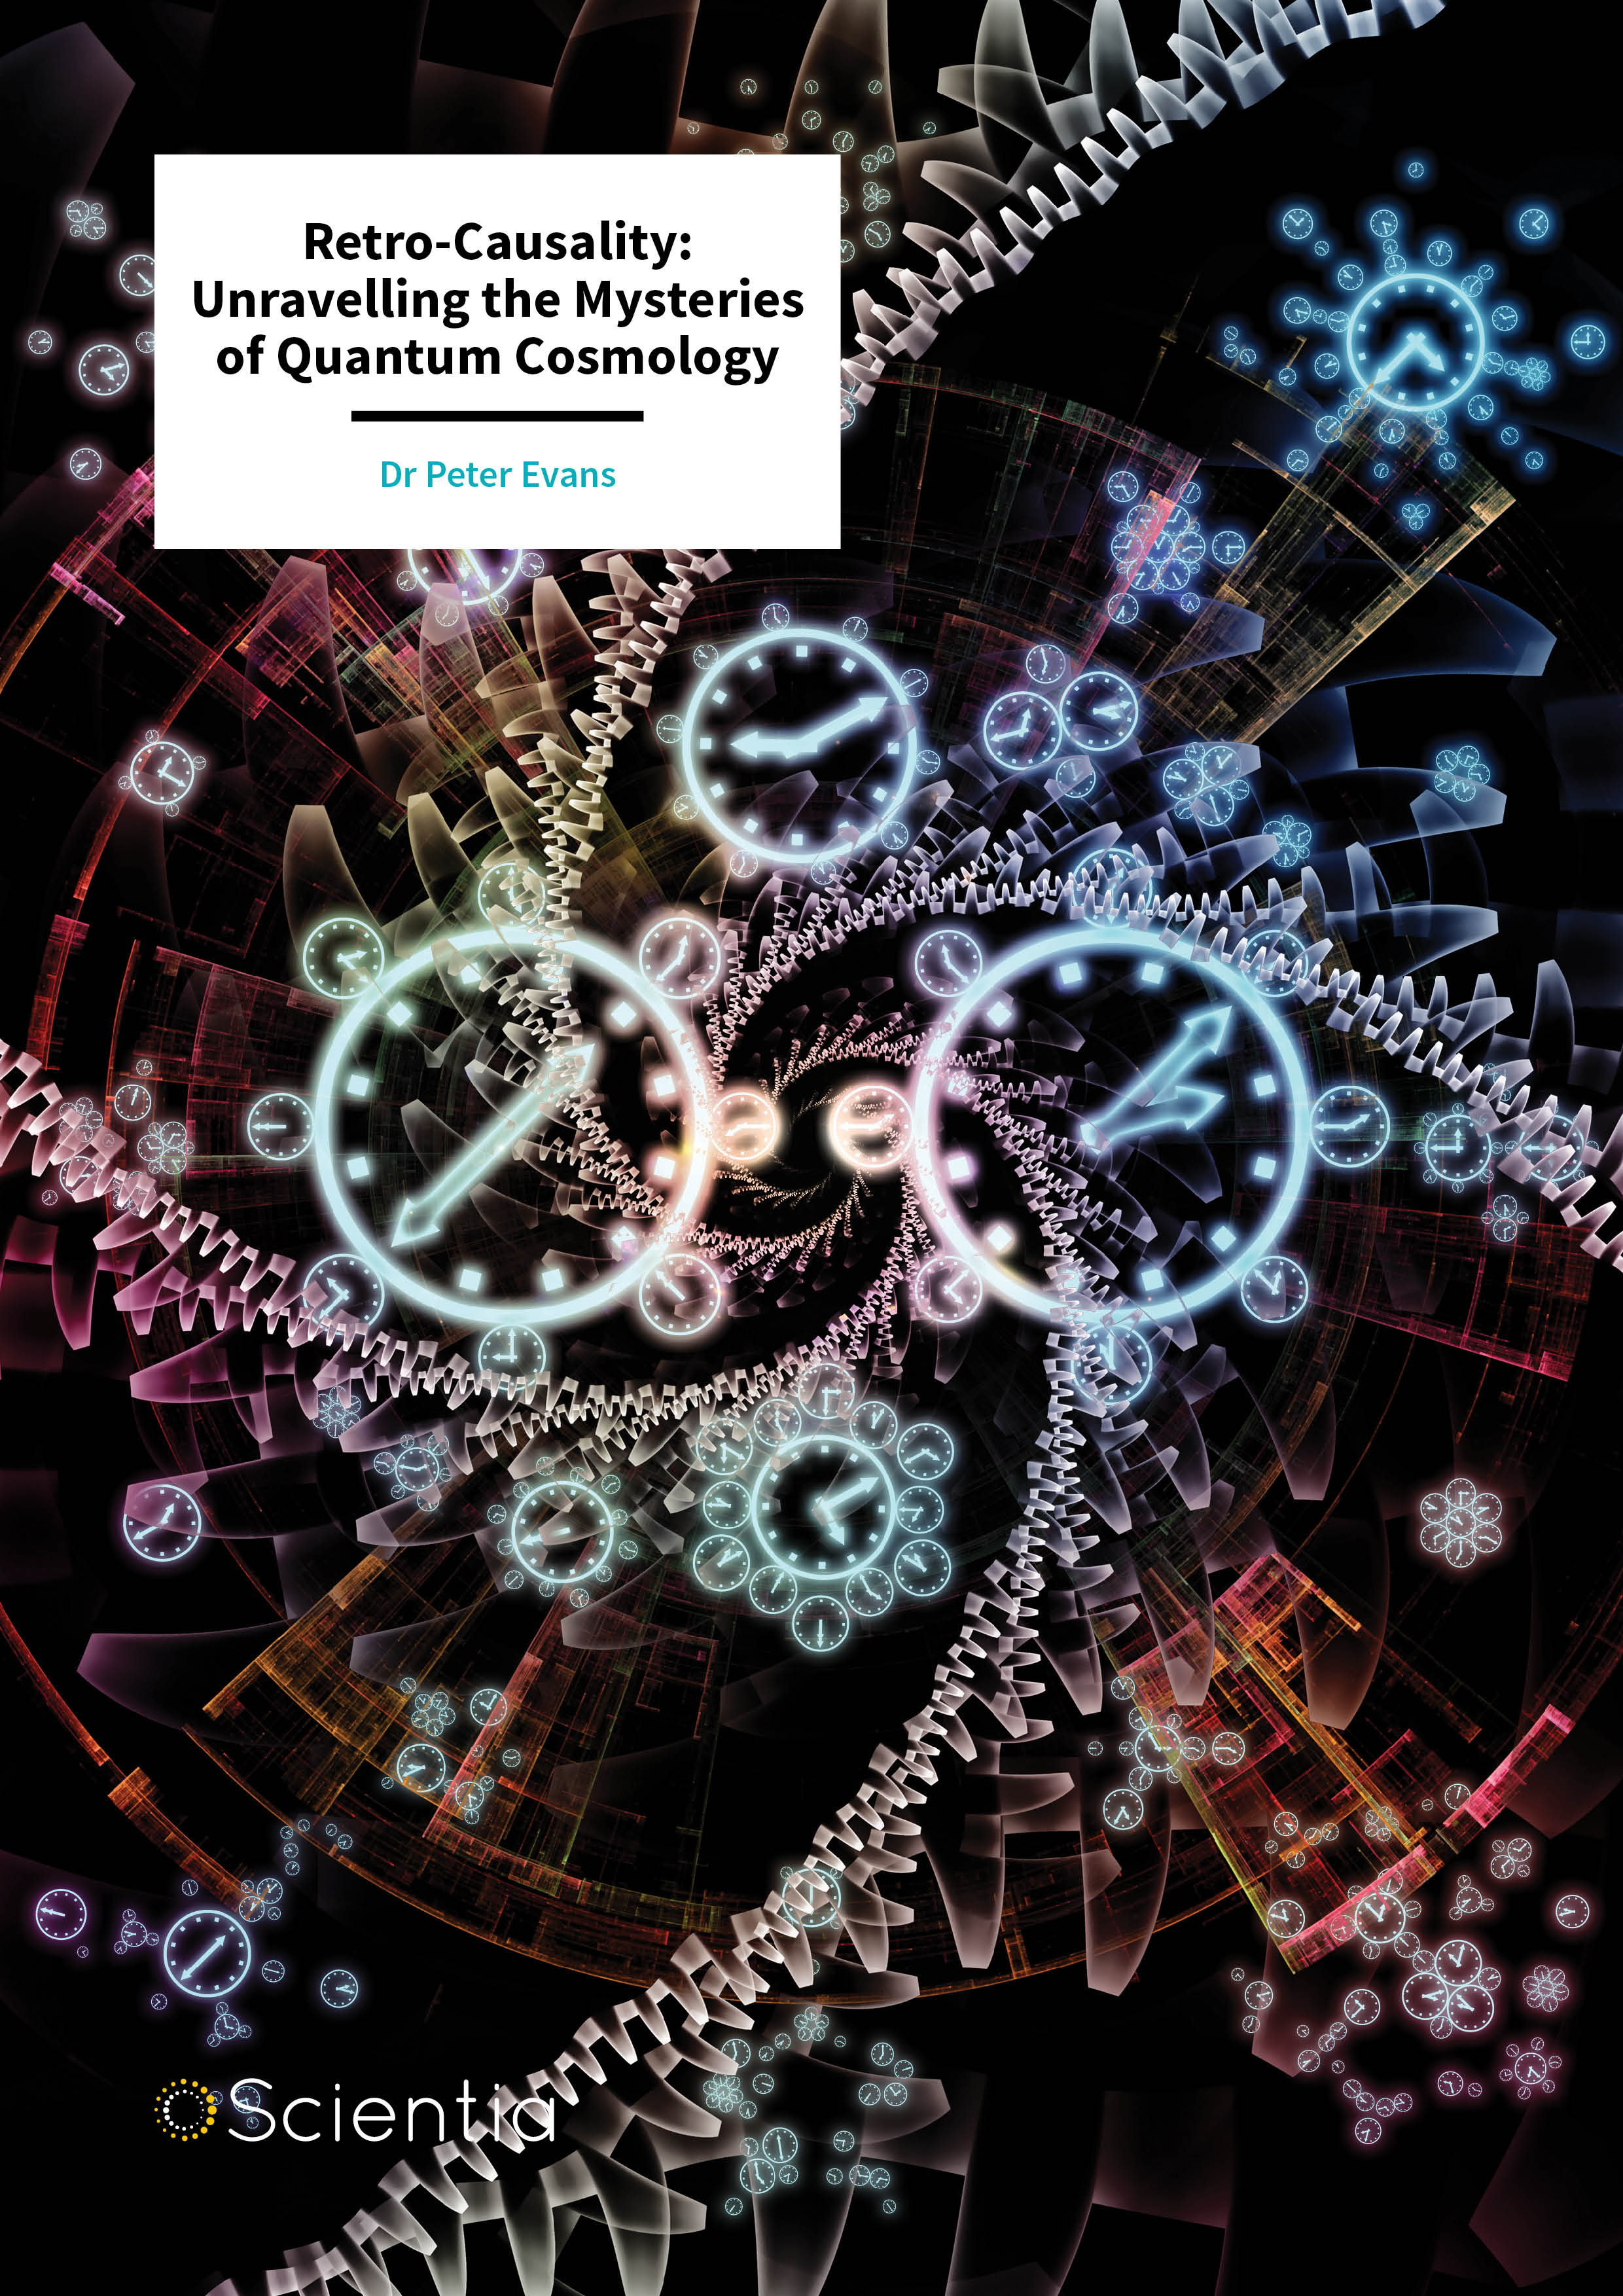 Dr Peter Evans – Retro-Causality: Unravelling the Mysteries of Quantum Cosmology